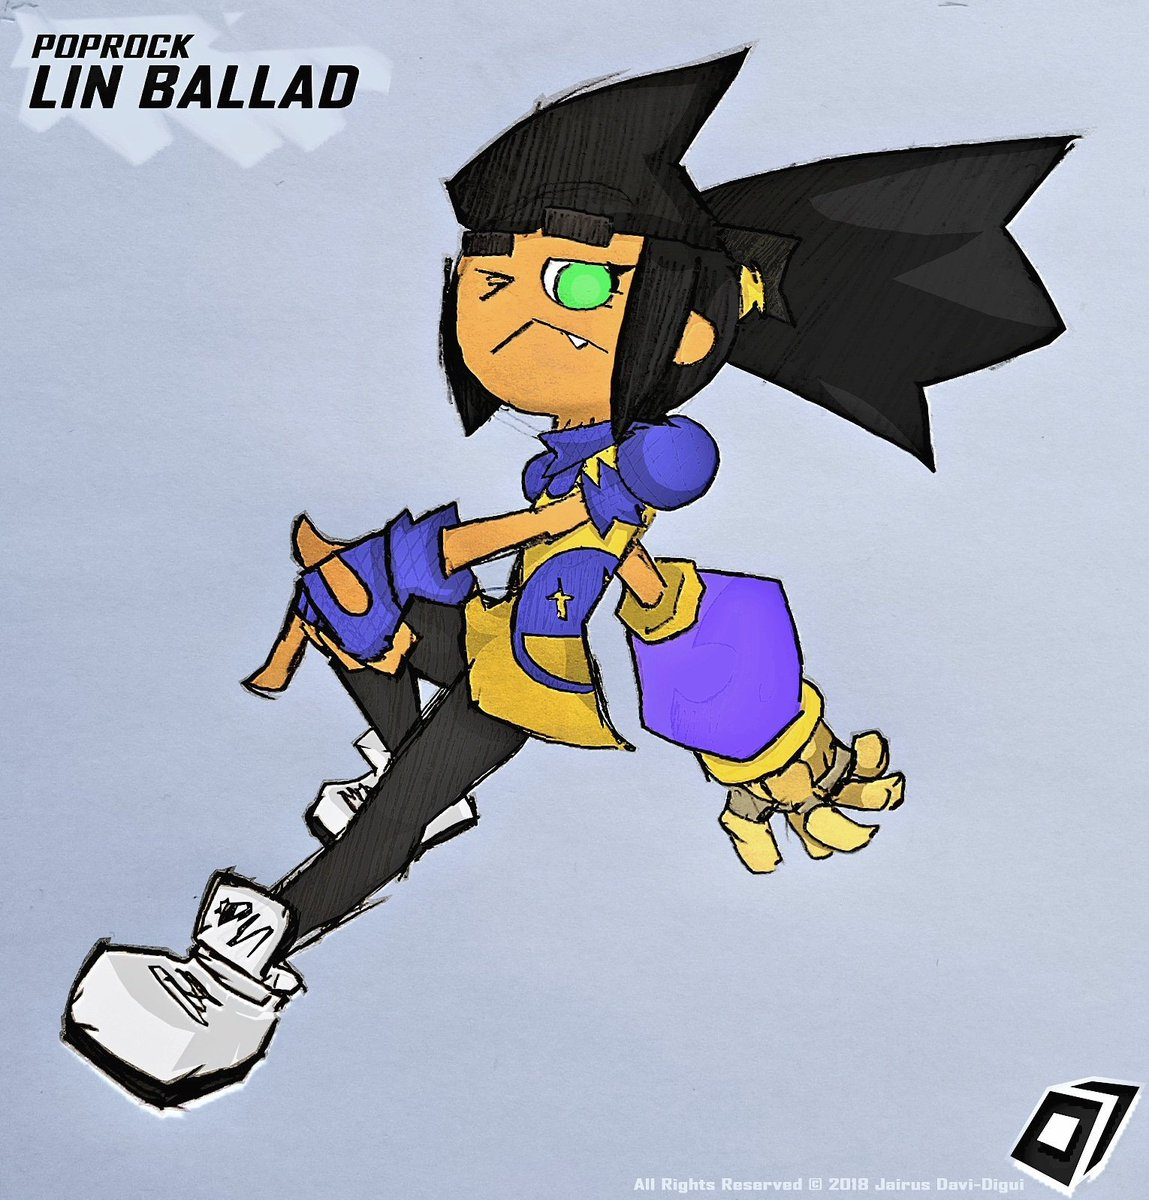 LIN BALLAD An Embodiment Of 90s Attitude With A Love For Adventure And Donairs POPROCK POPROCKgame Sketch